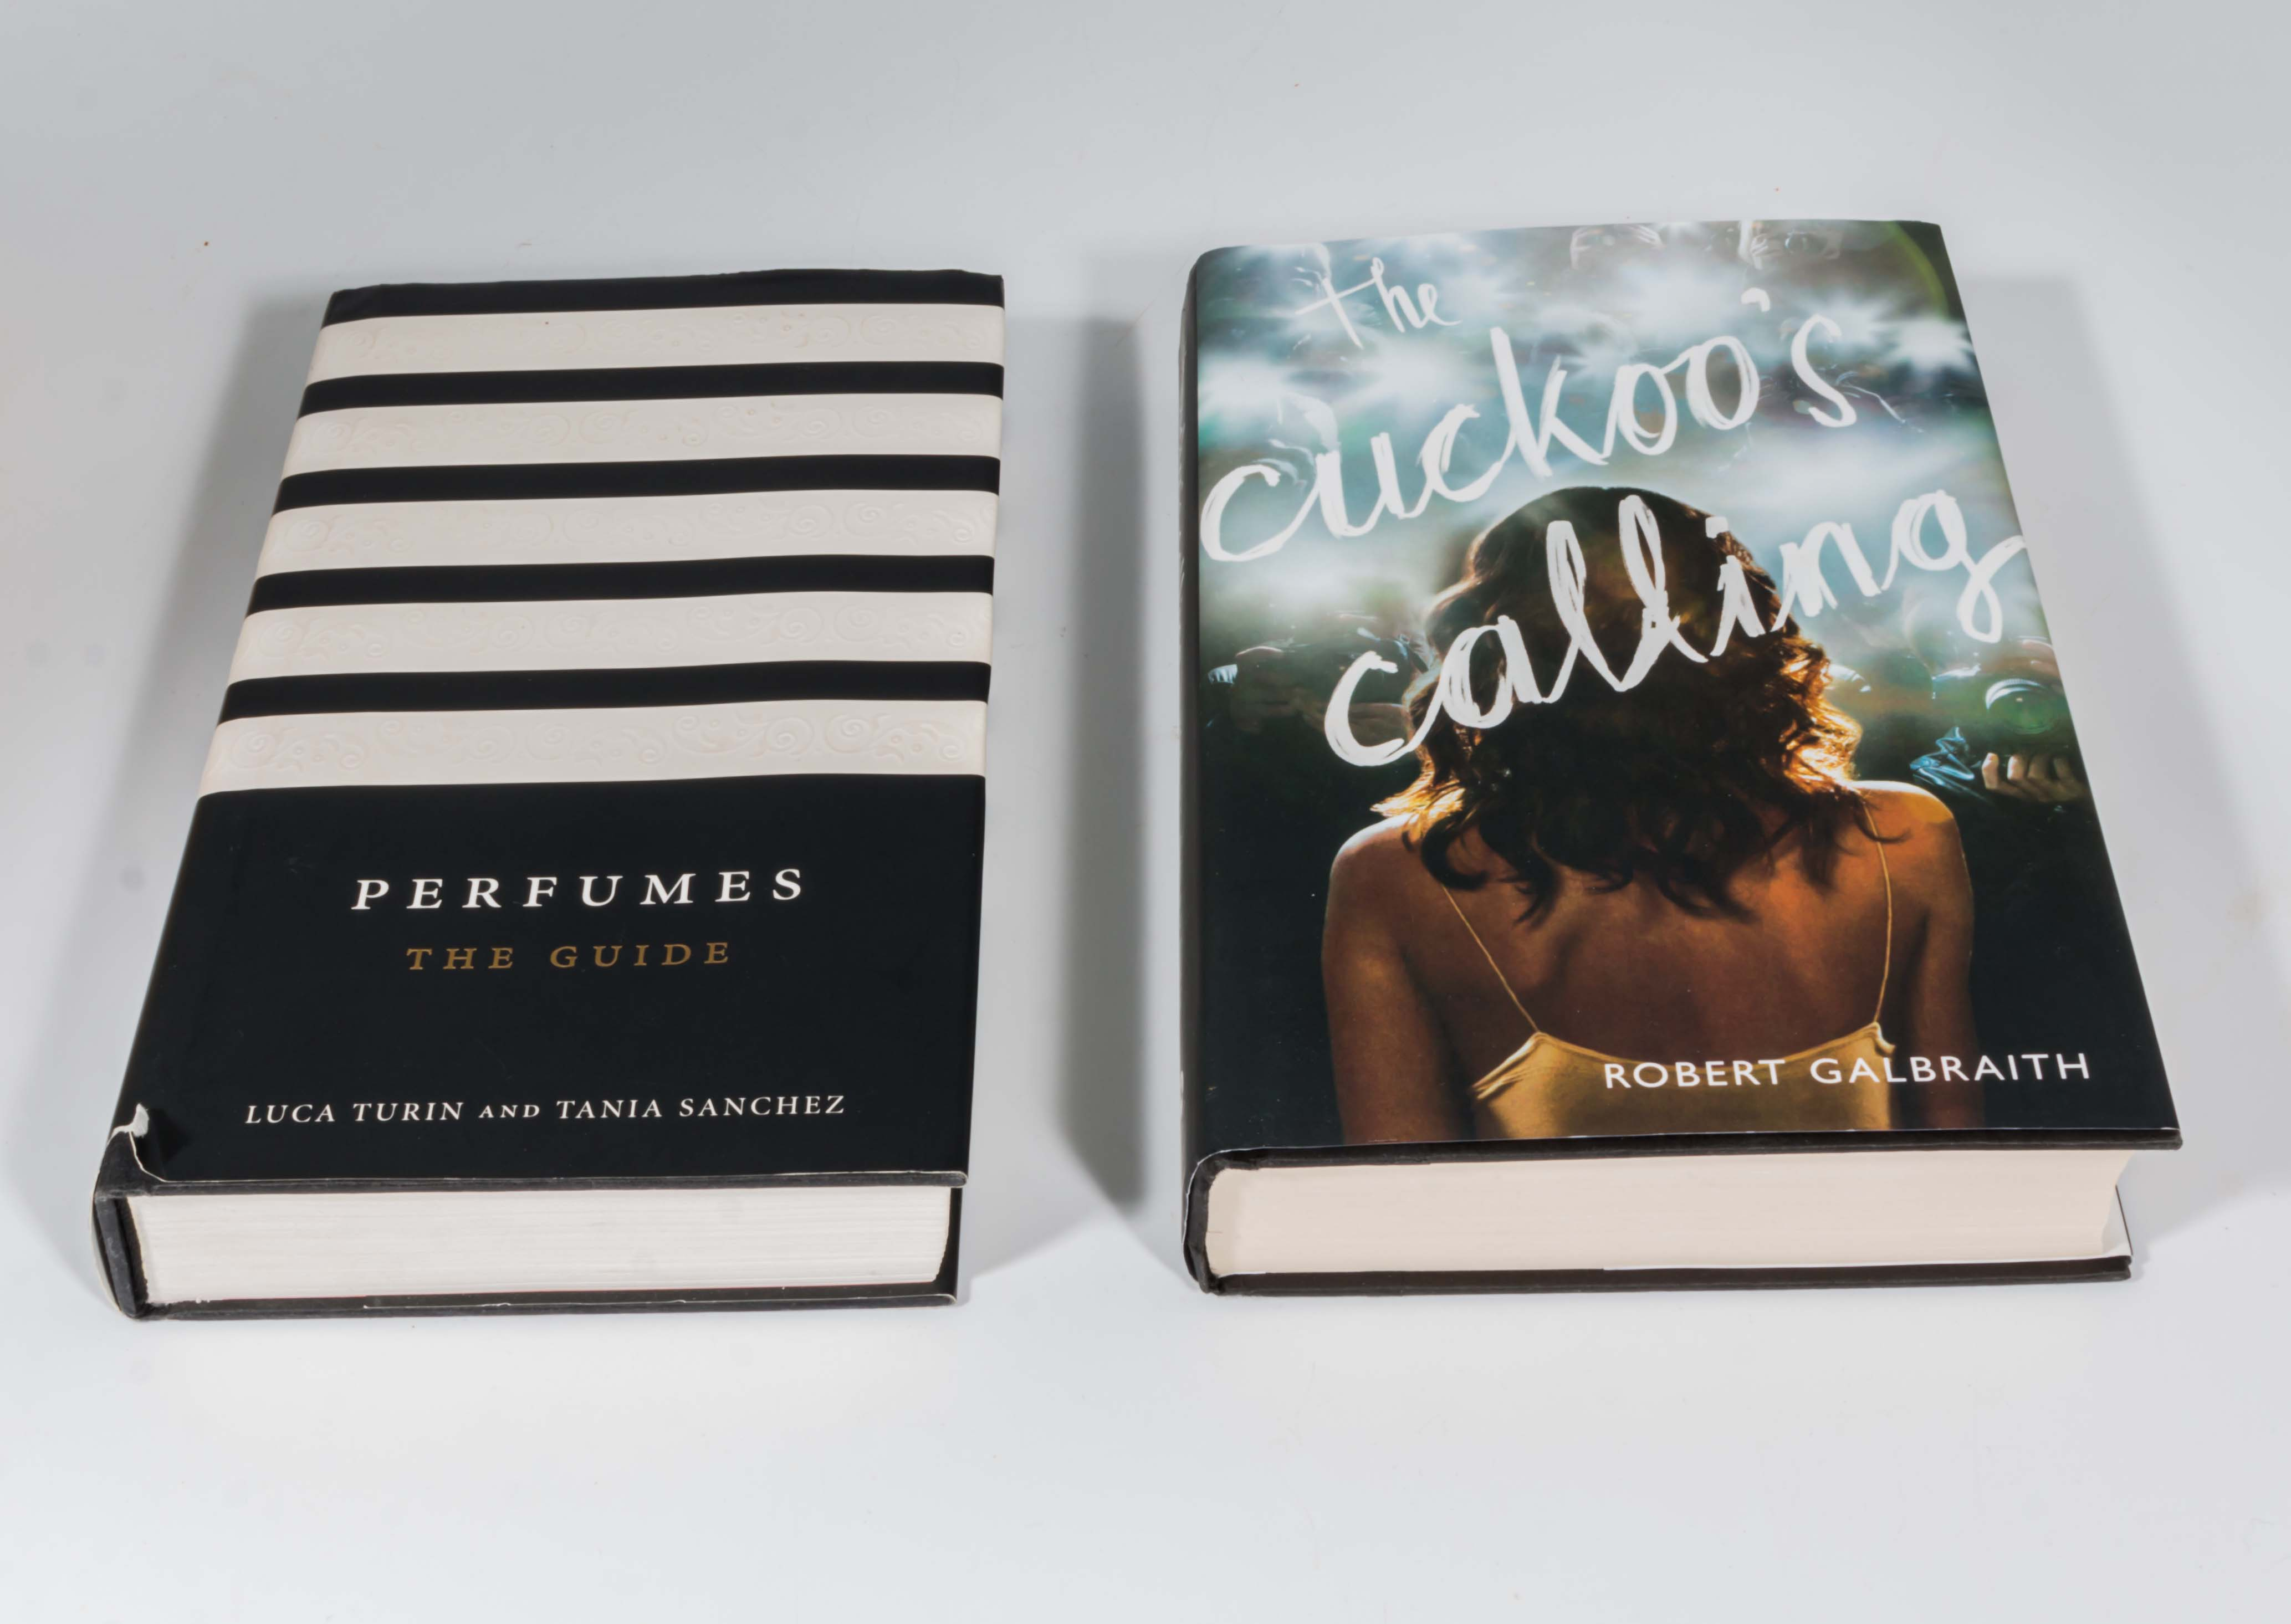 Lot 48 - A first edition of The Cuckoos Calling, Galbraith/JK Rowling, together with an edition of Perfumes